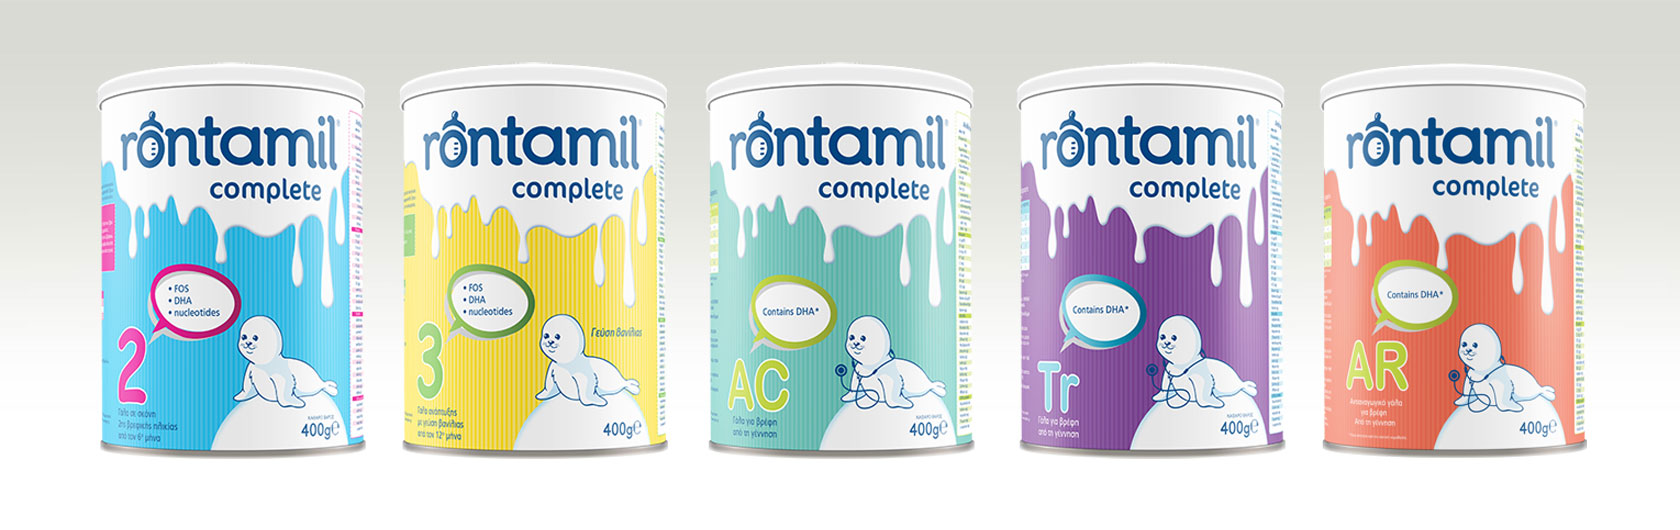 Rontamil Baby Nutrition